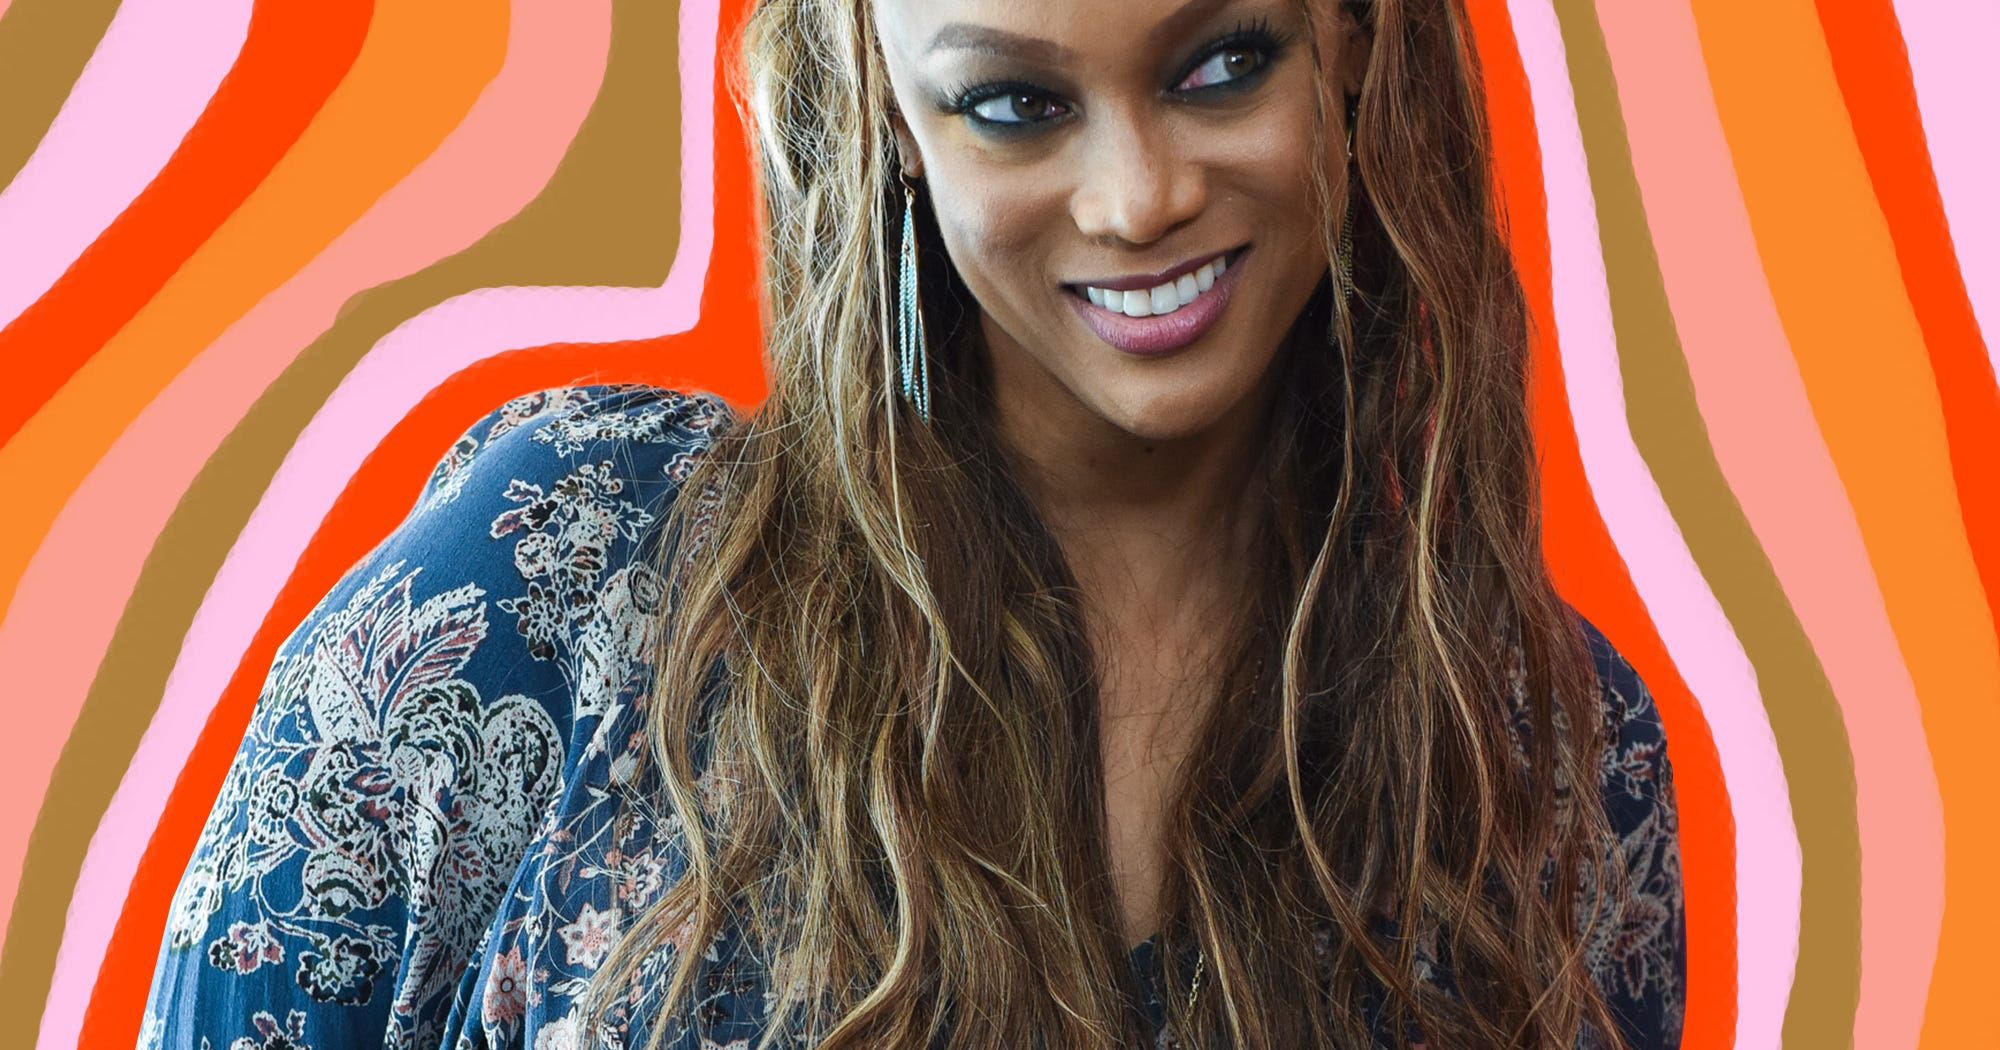 Smizing & 7 Other Life Lessons ANTM Taught Us